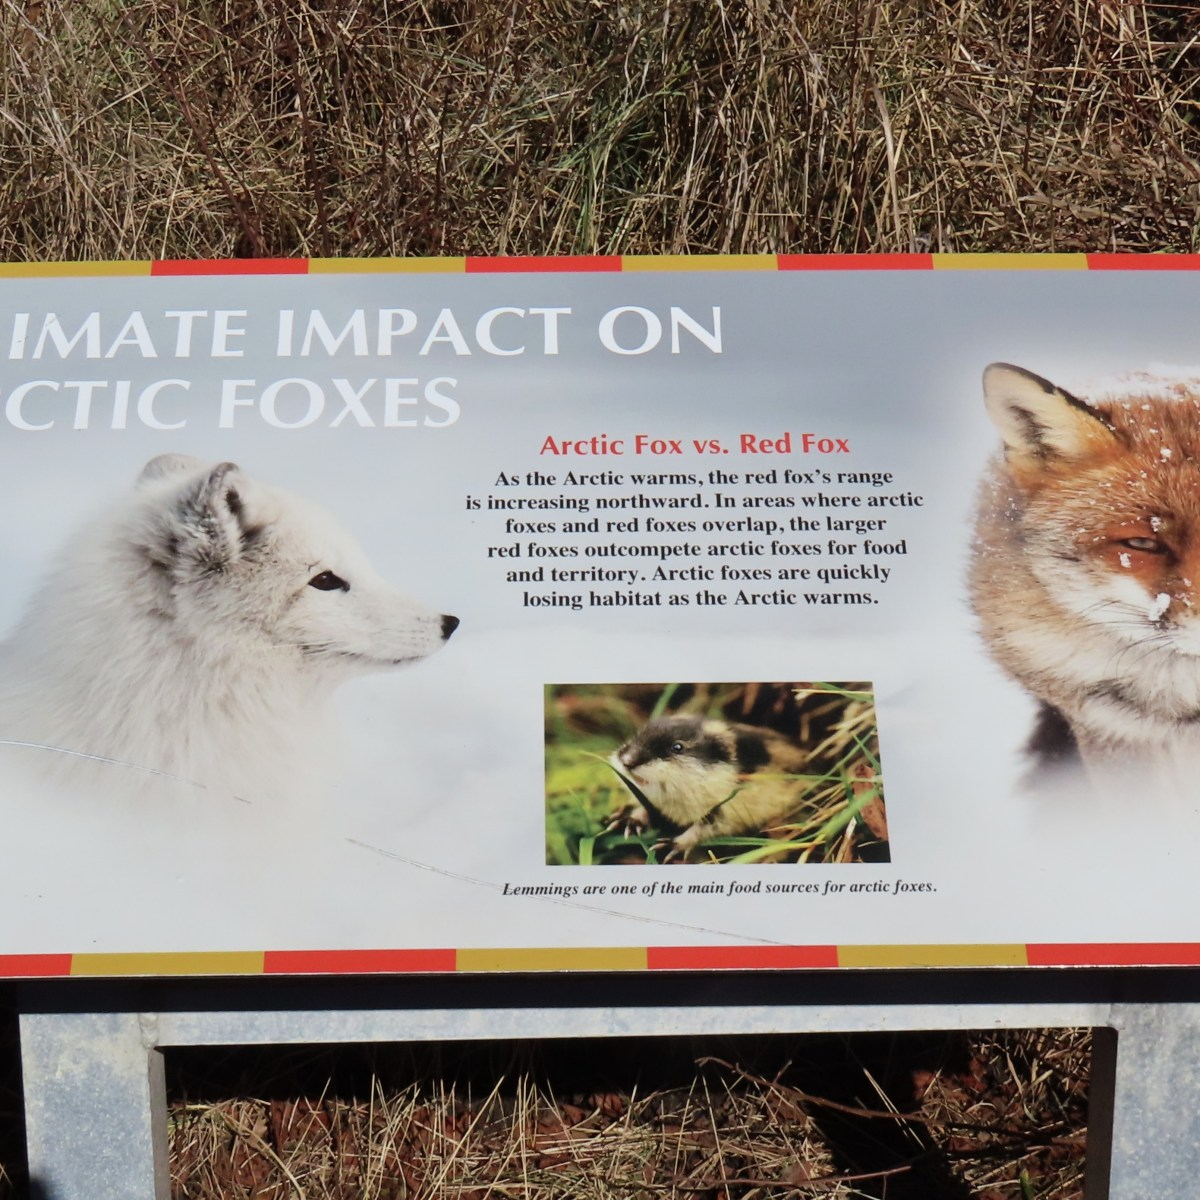 An outdoor interpretive sign detailing Climate Impact on Arctic Foxes